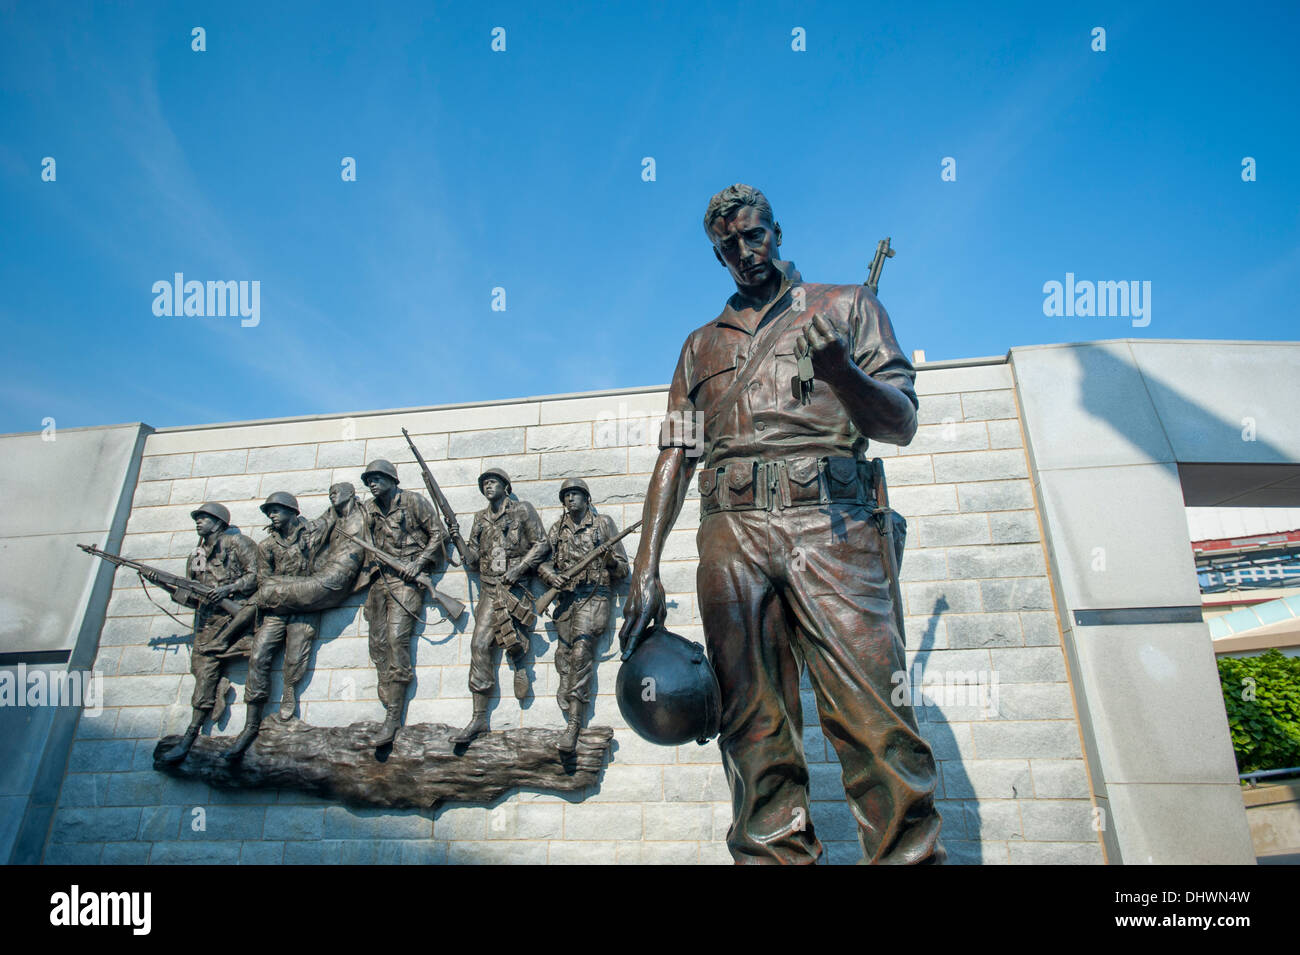 usa-america-new-jersey-nj-nj-atlantic-city-korean-war-memorial-on-DHWN4W.jpg